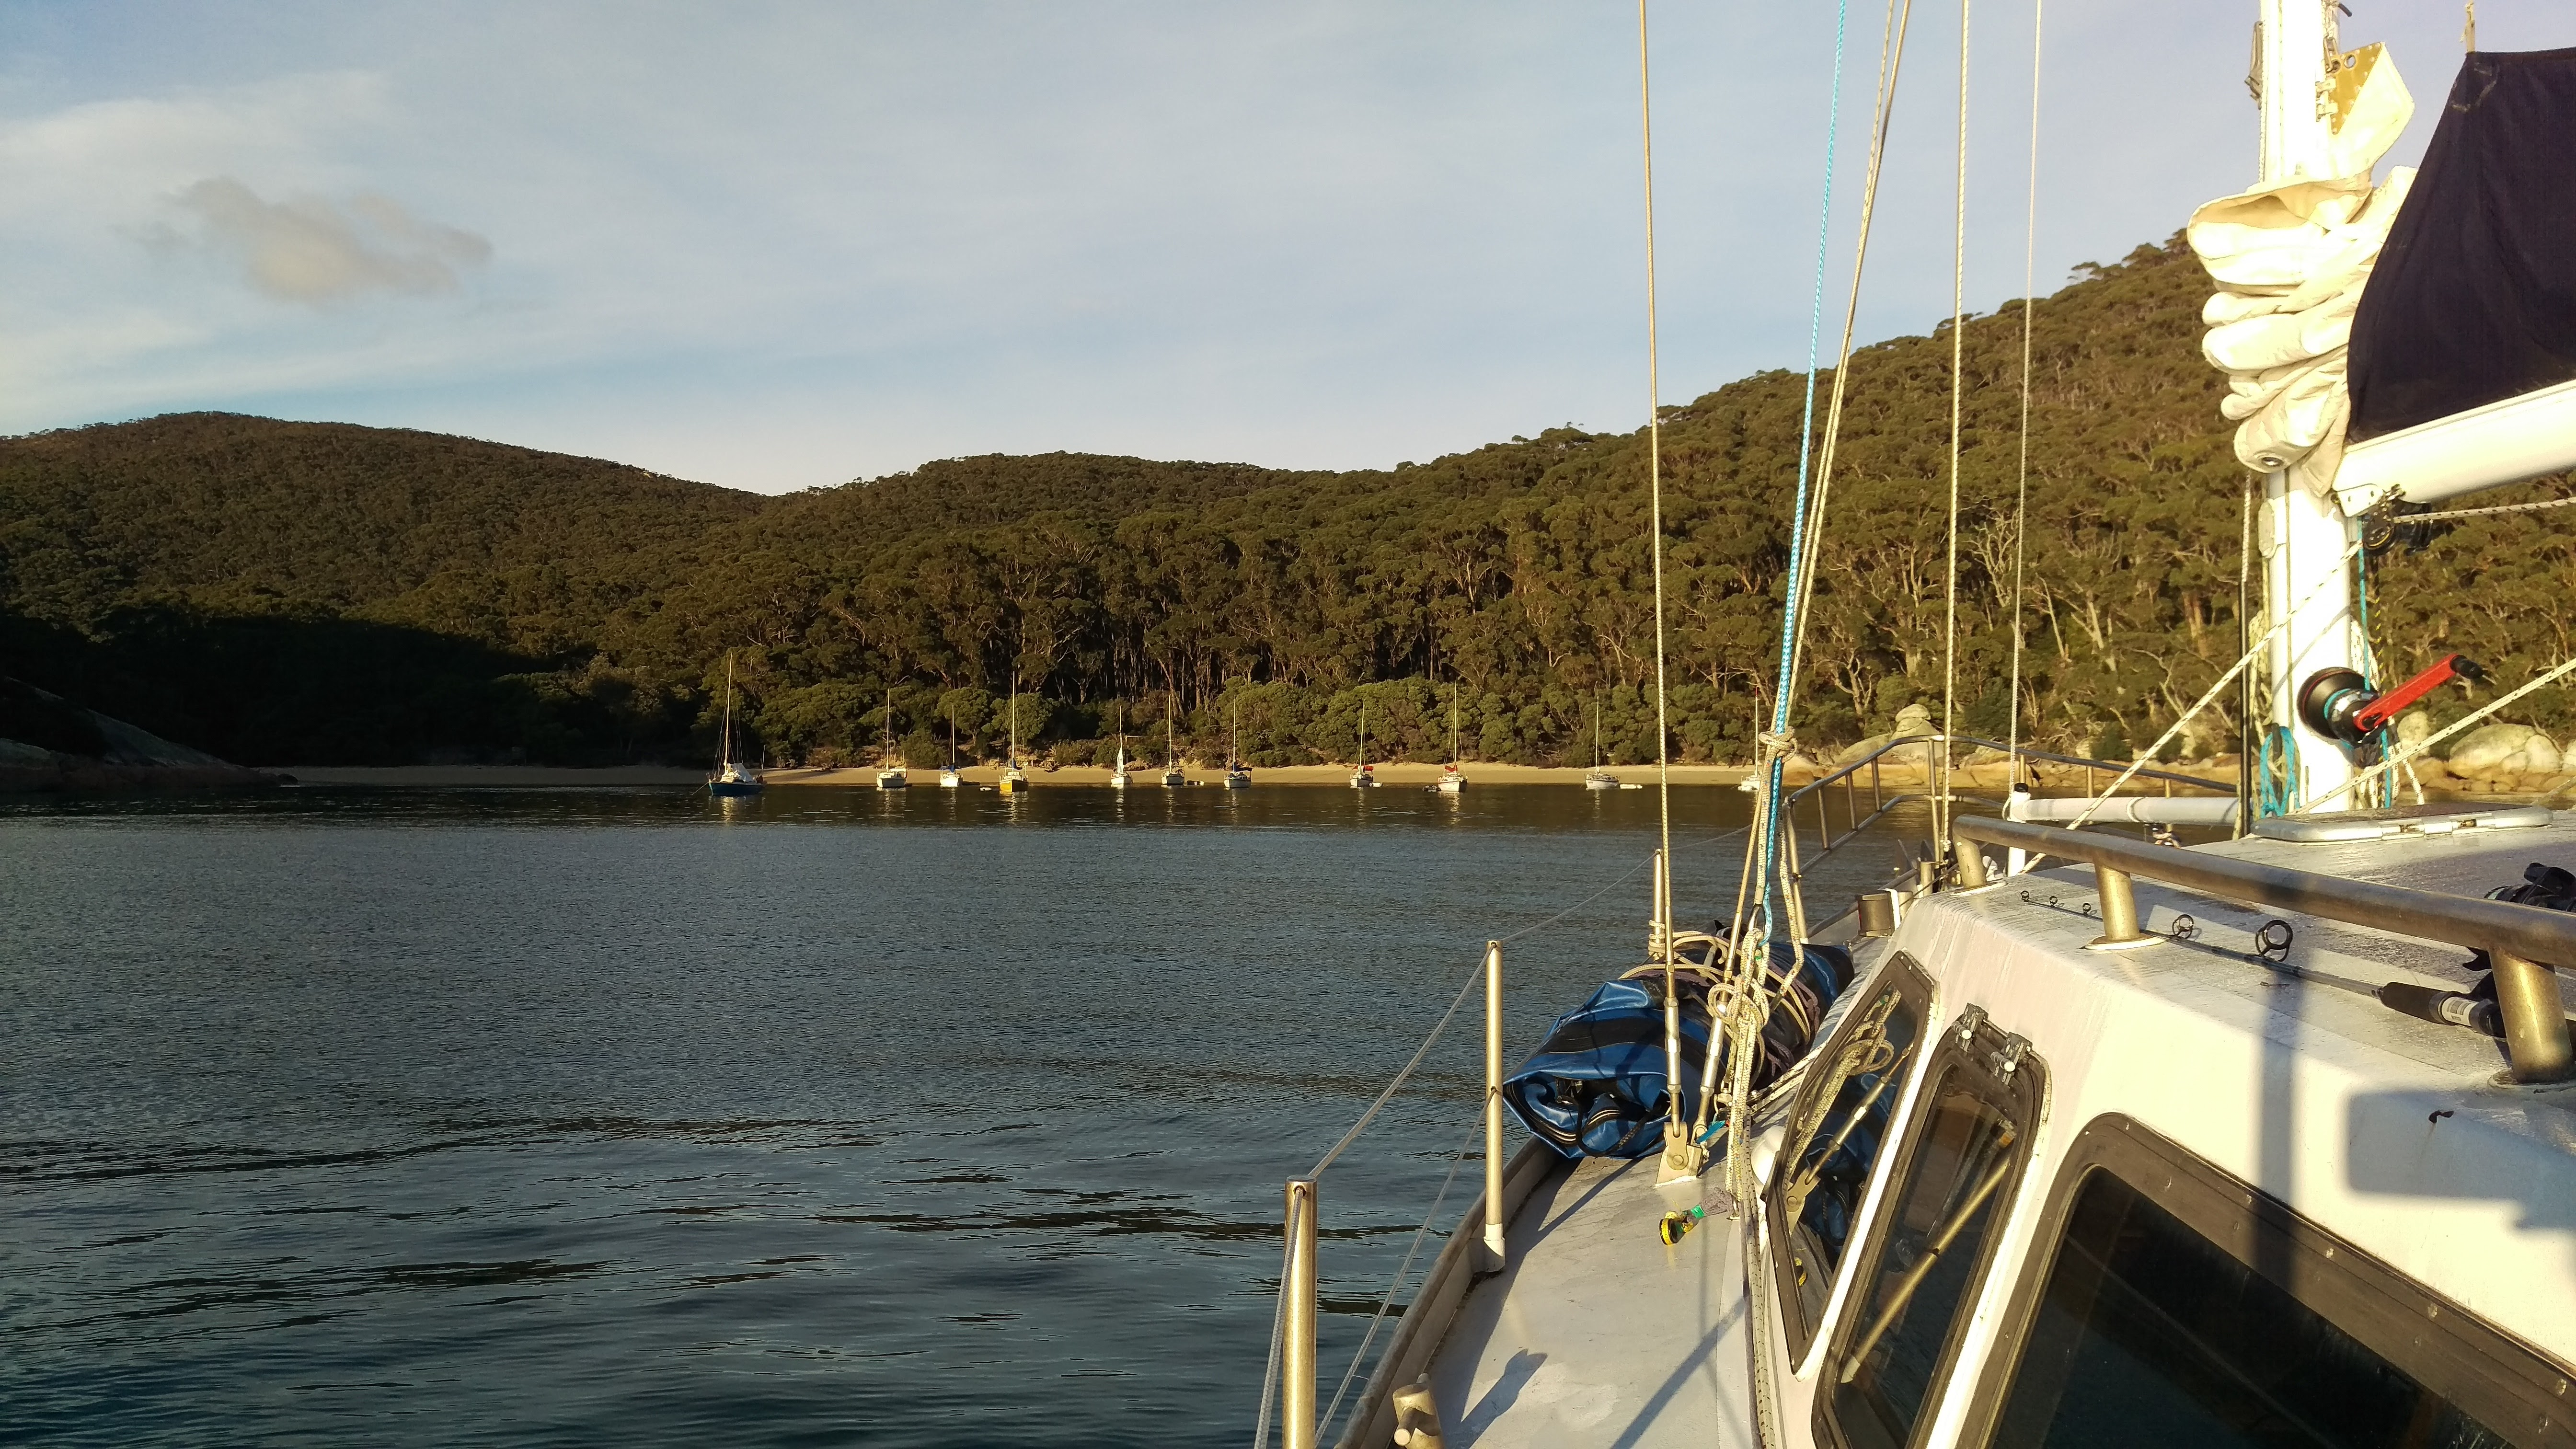 Anchorage at Refuge Cove